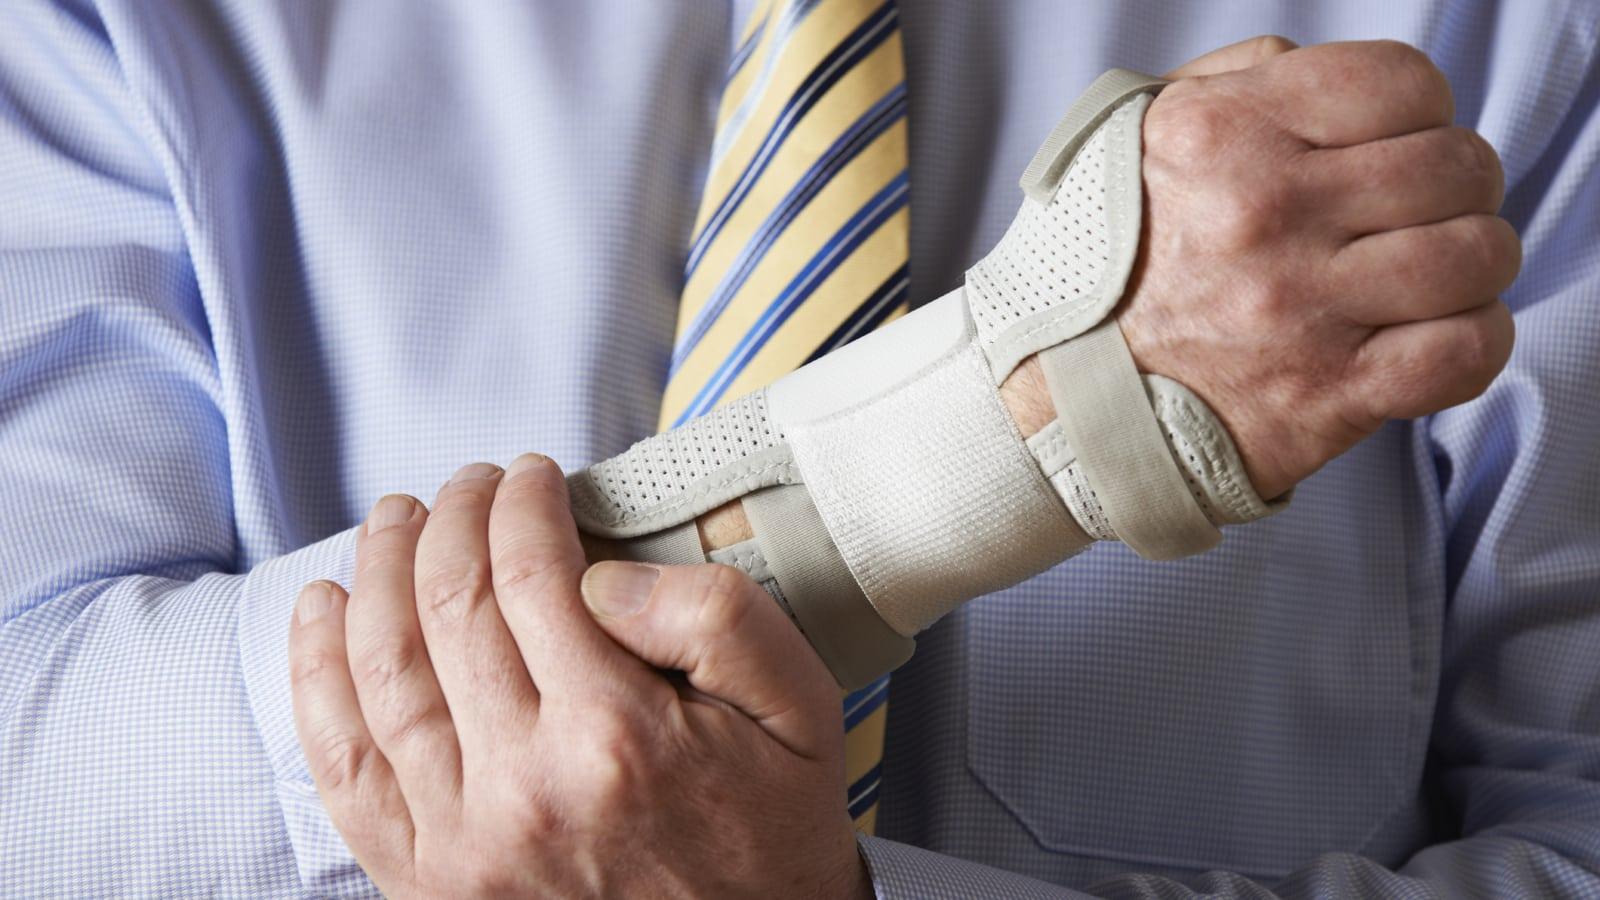 Businessman Suffering With Repetitive Strain Injury